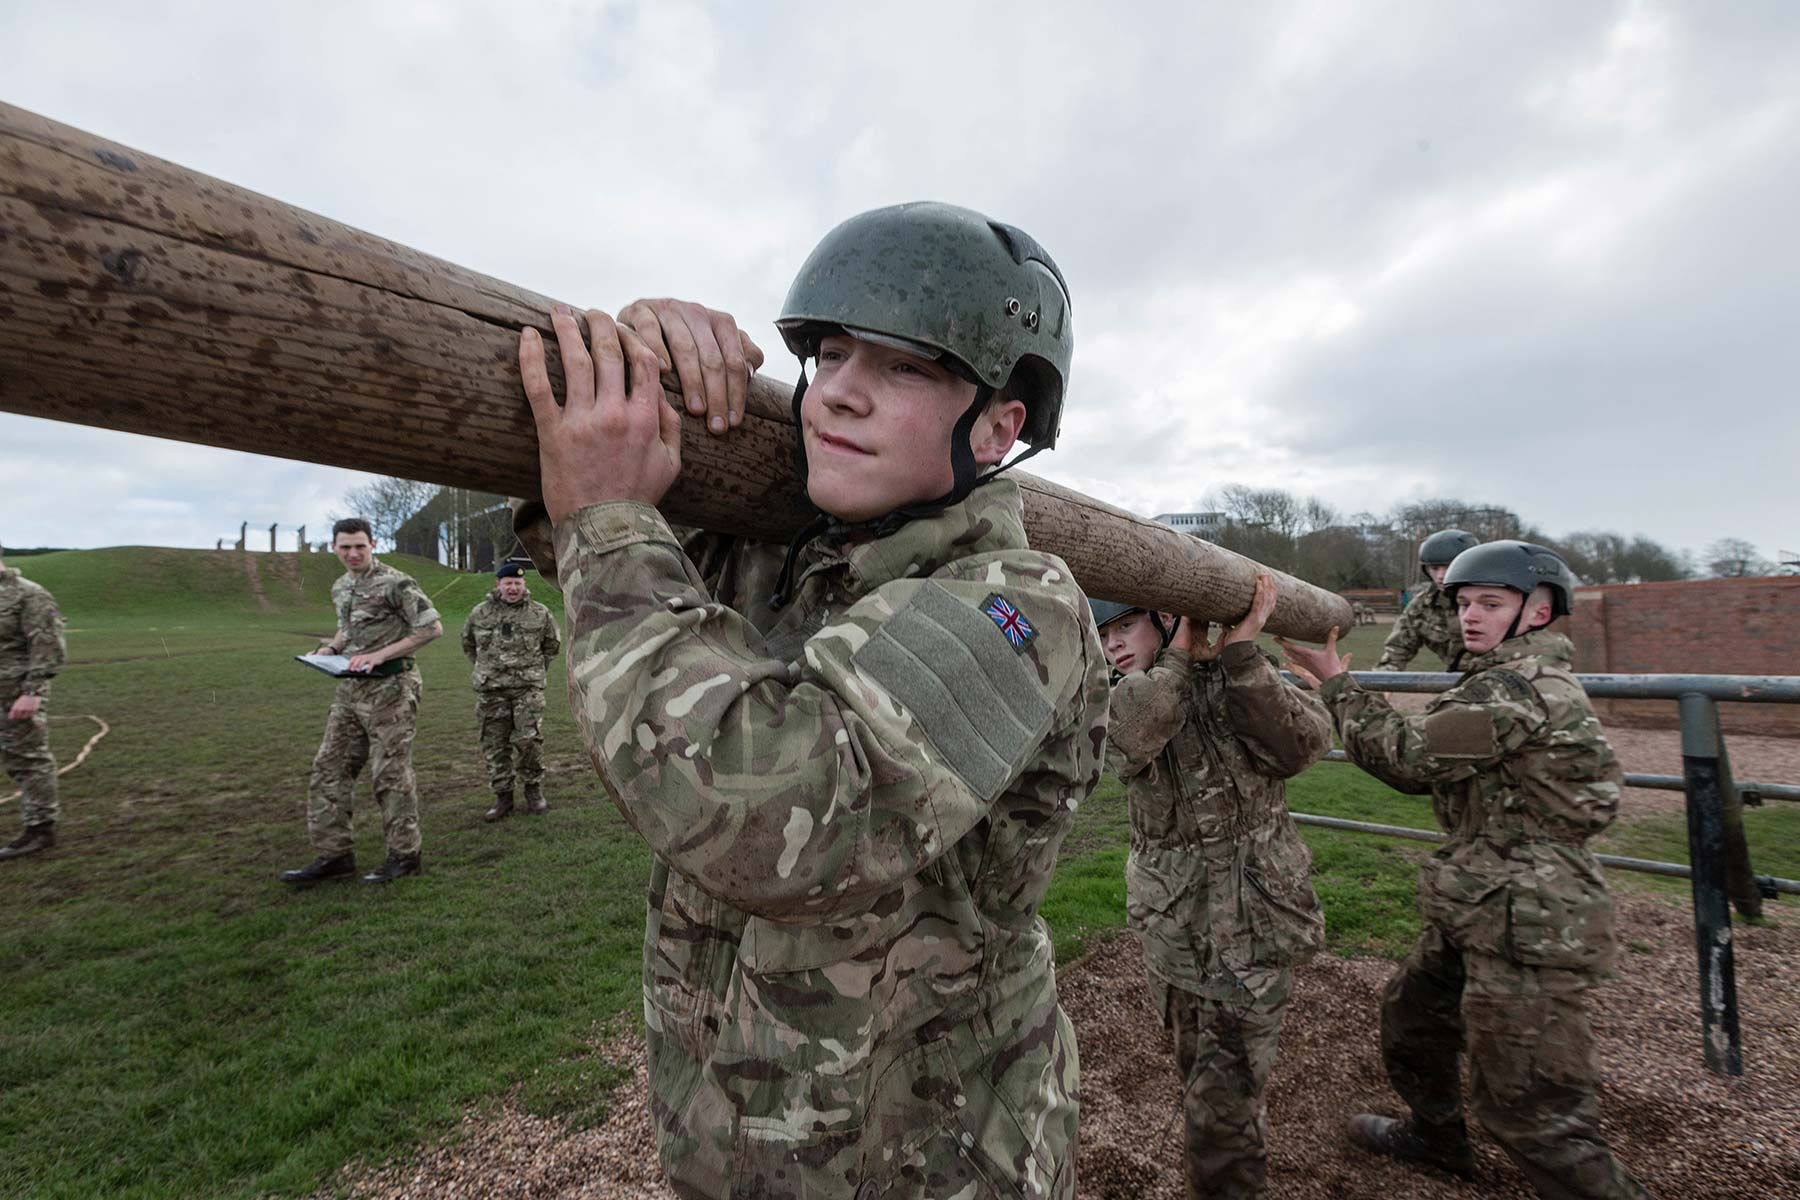 Royal Marine cadets working as a team to carry a log